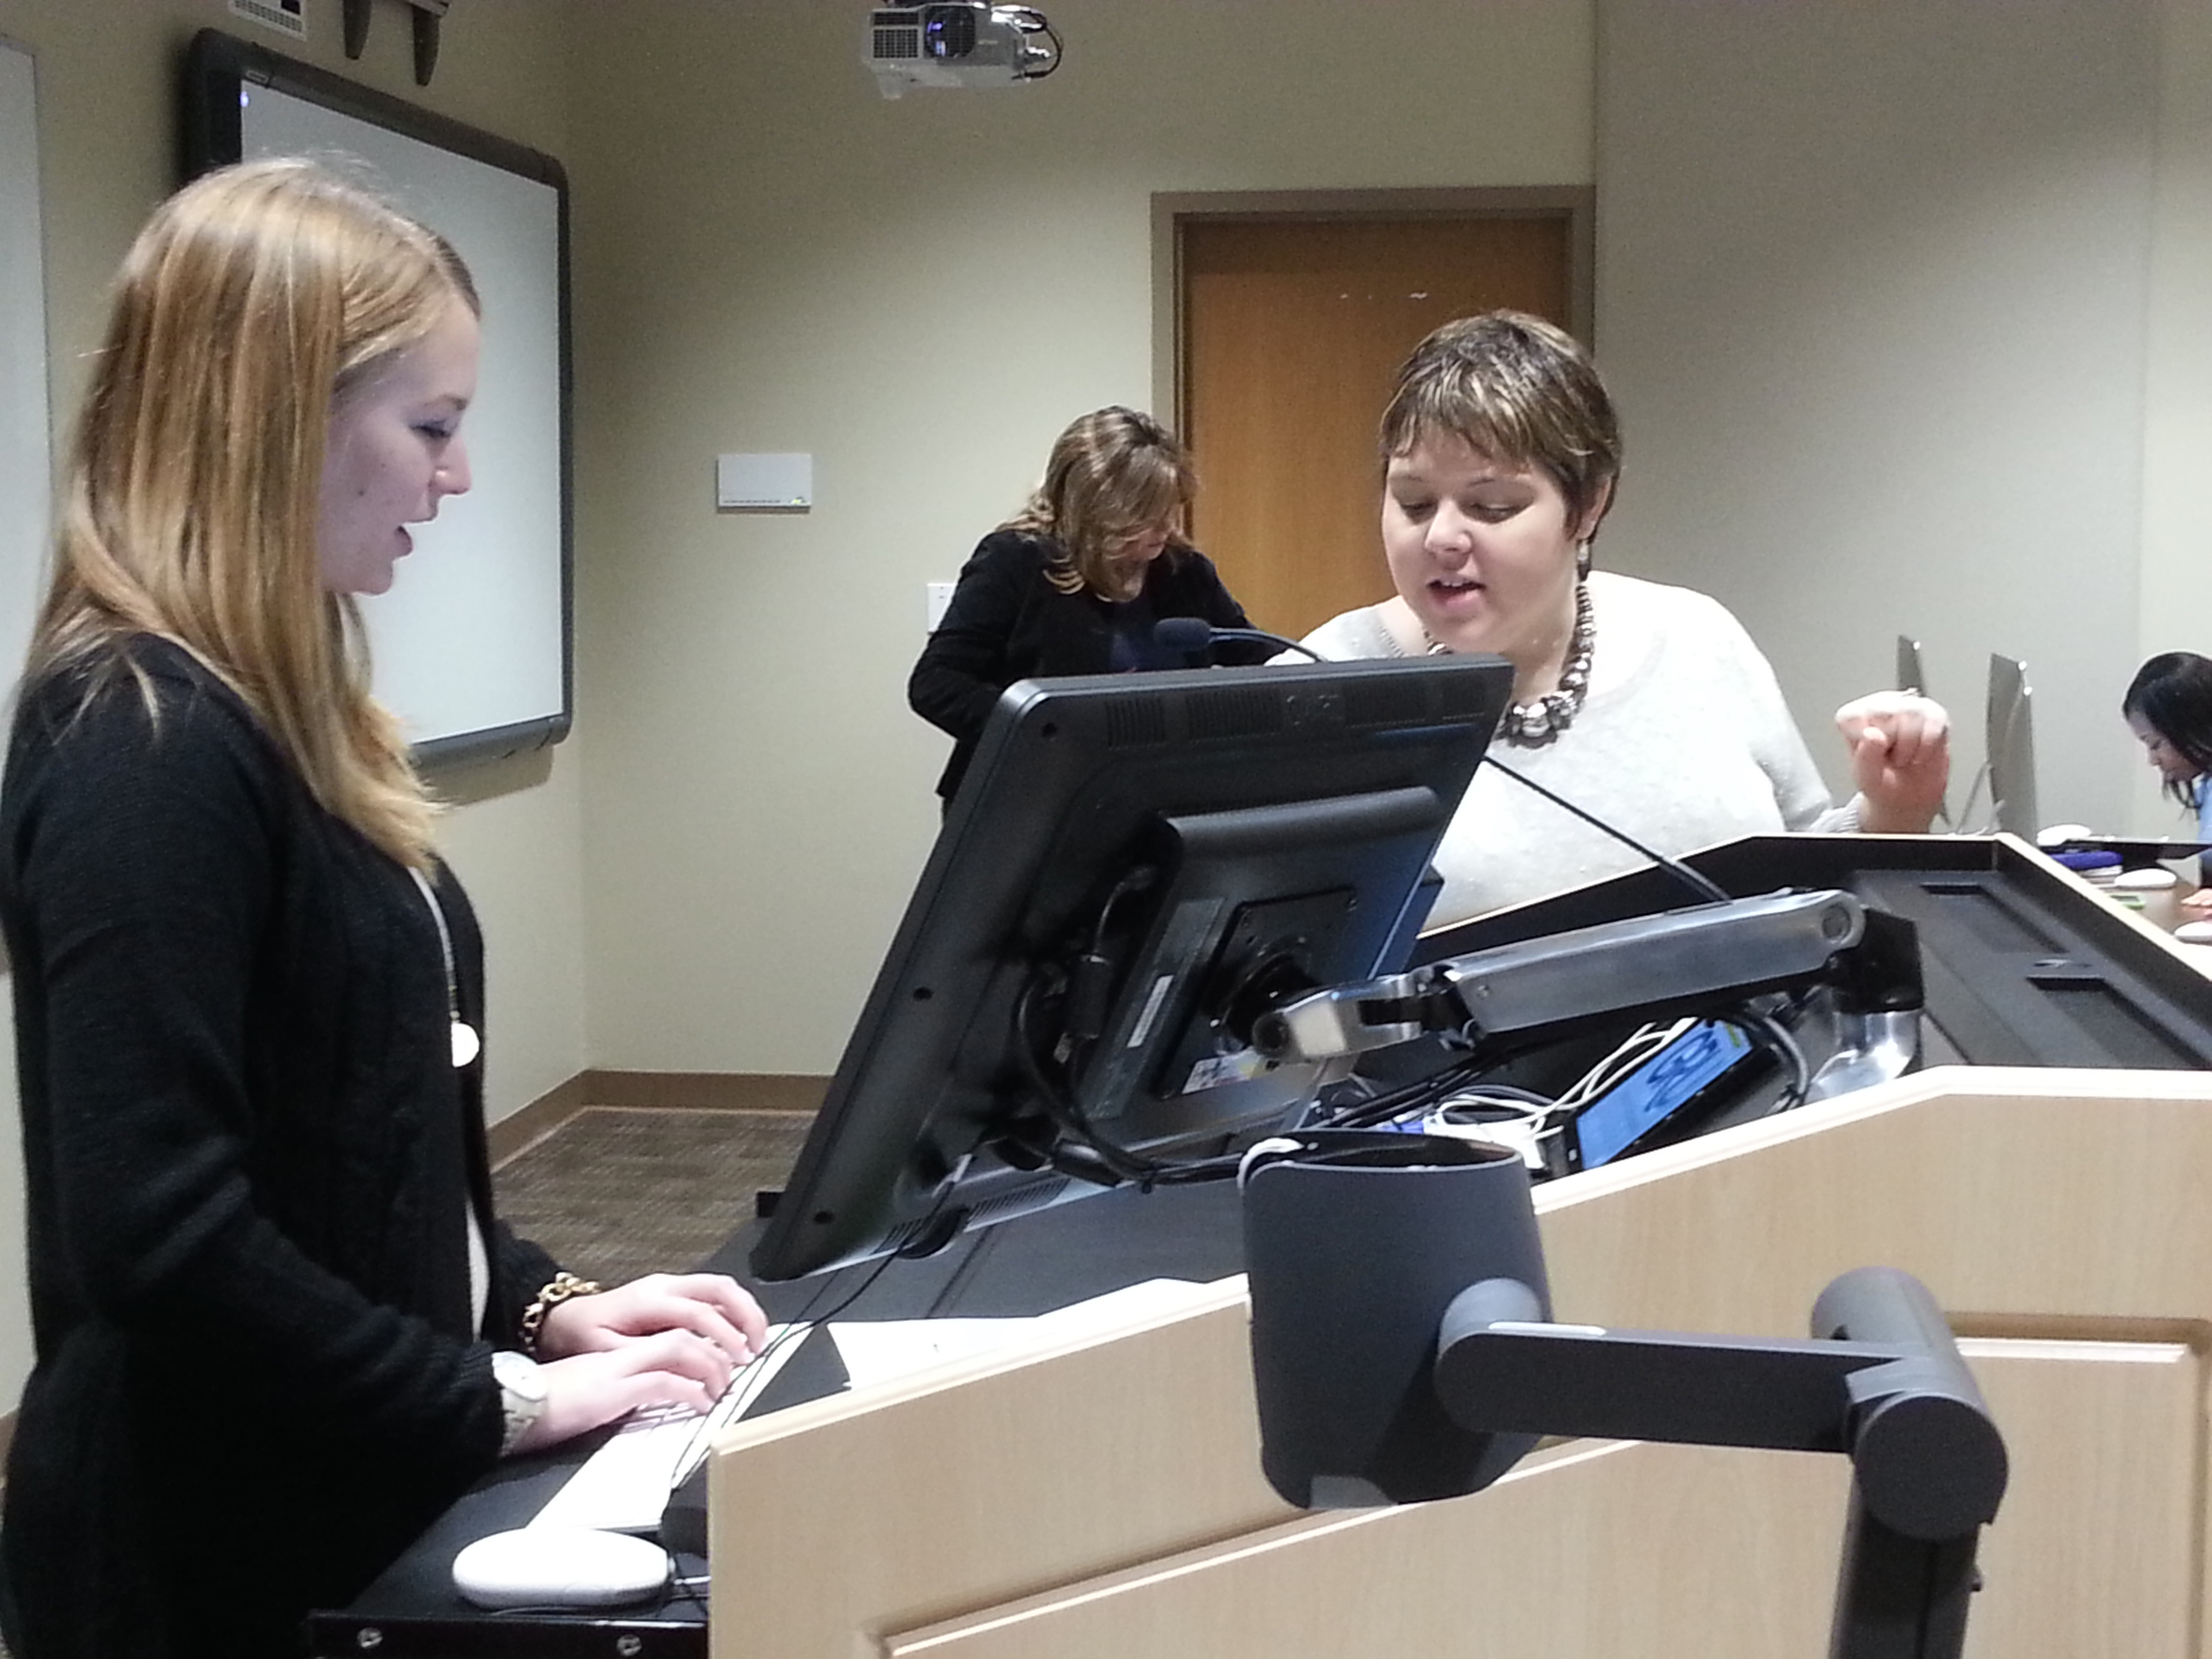 Instructional Resource Center Adds Customized Workshops For Area